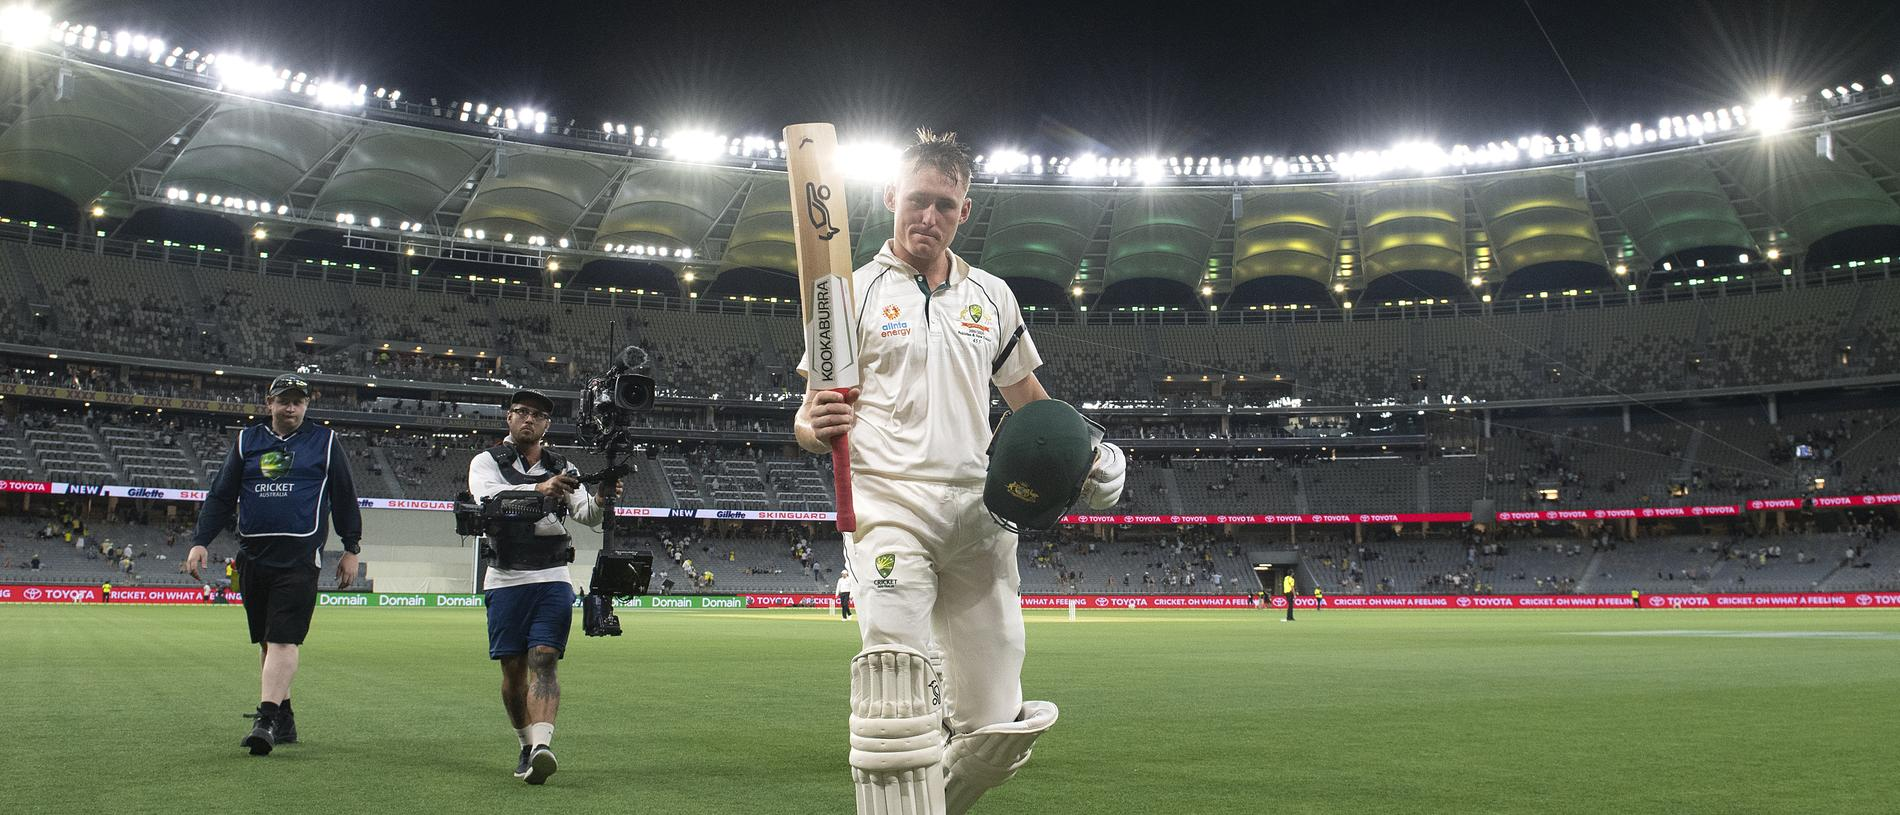 Australian batsman Marnus Labuschagne leaves the field at stumps 110 not out day 1 of the first Test match between Australia and New Zealand at Optus Stadium in Perth, Thursday, December 12, 2019. (AAP Image/Dave Hunt) NO ARCHIVING, EDITORIAL USE ONLY, IMAGES TO BE USED FOR NEWS REPORTING PURPOSES ONLY, NO COMMERCIAL USE WHATSOEVER, NO USE IN BOOKS WITHOUT PRIOR WRITTEN CONSENT FROM AAP